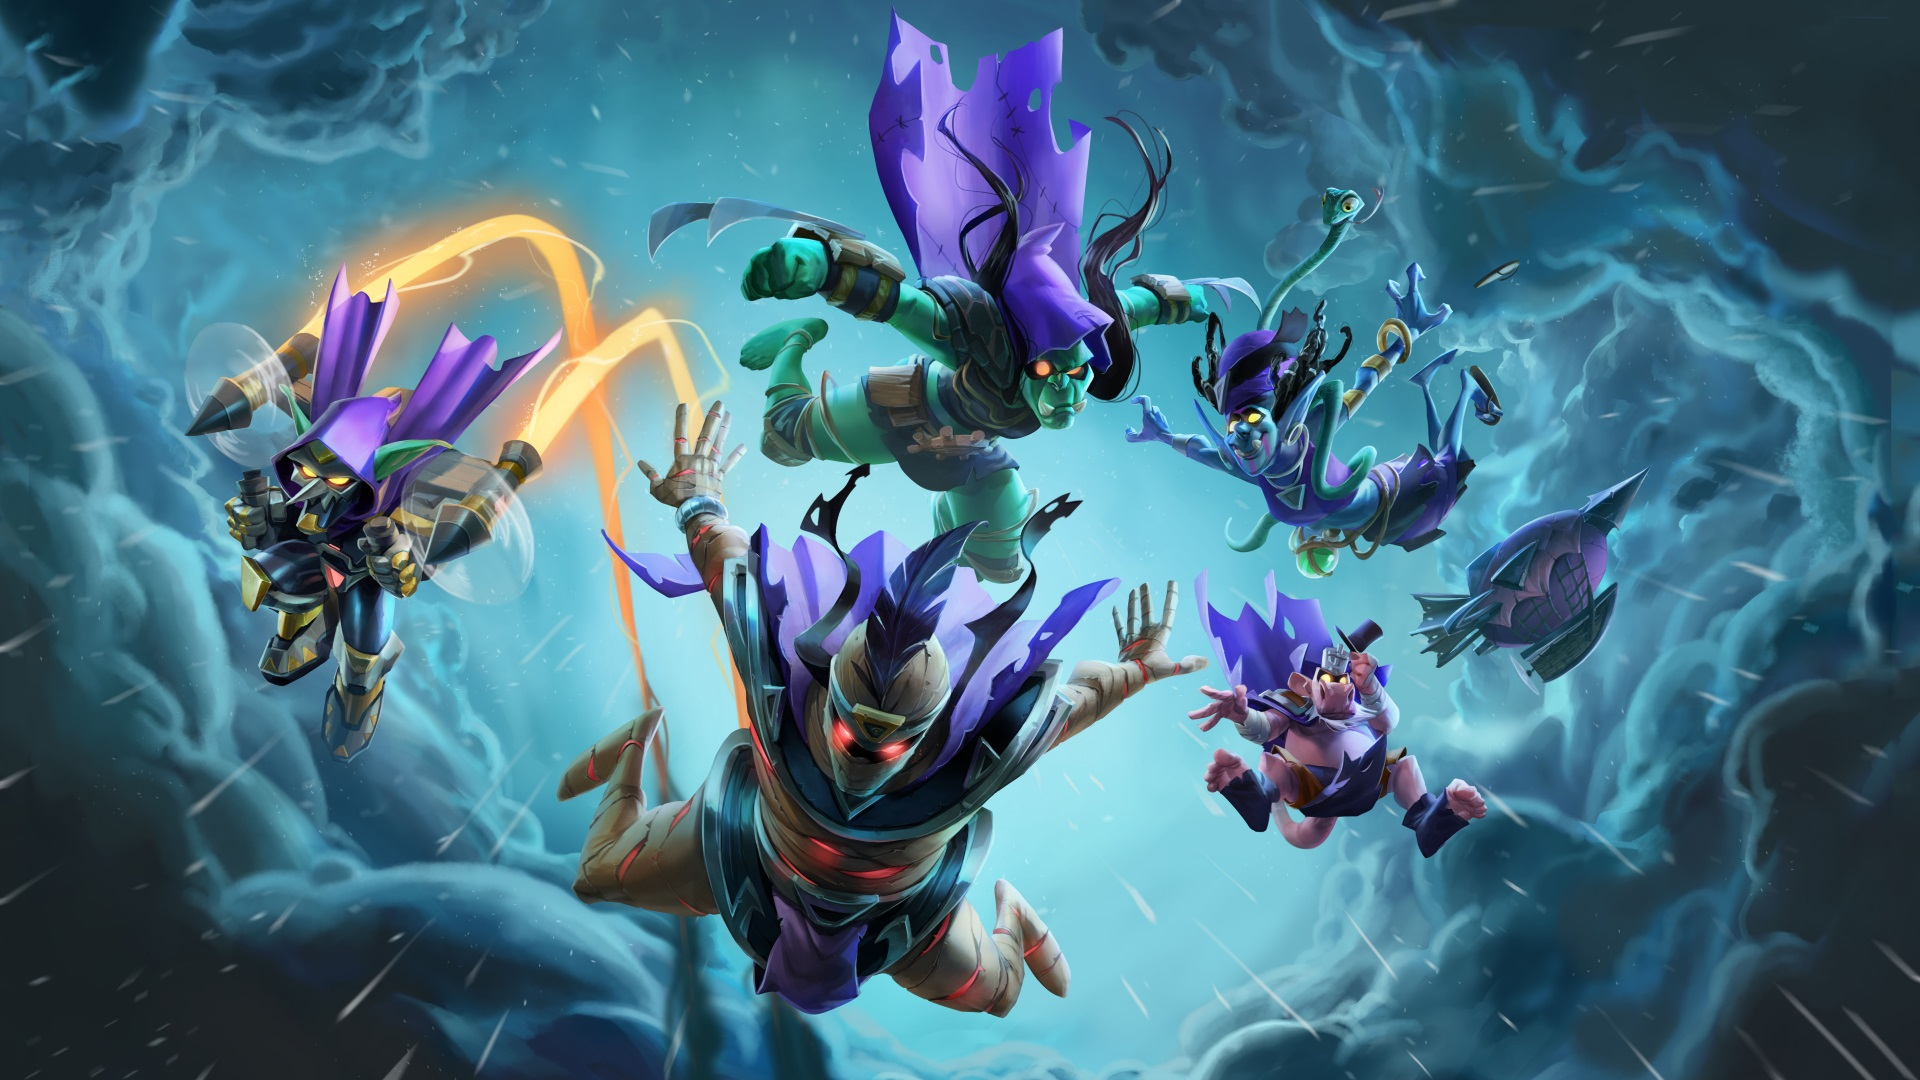 Wallpaper Wow Hd Hearthstone S Rise Of Shadows Gets Dastardly With A